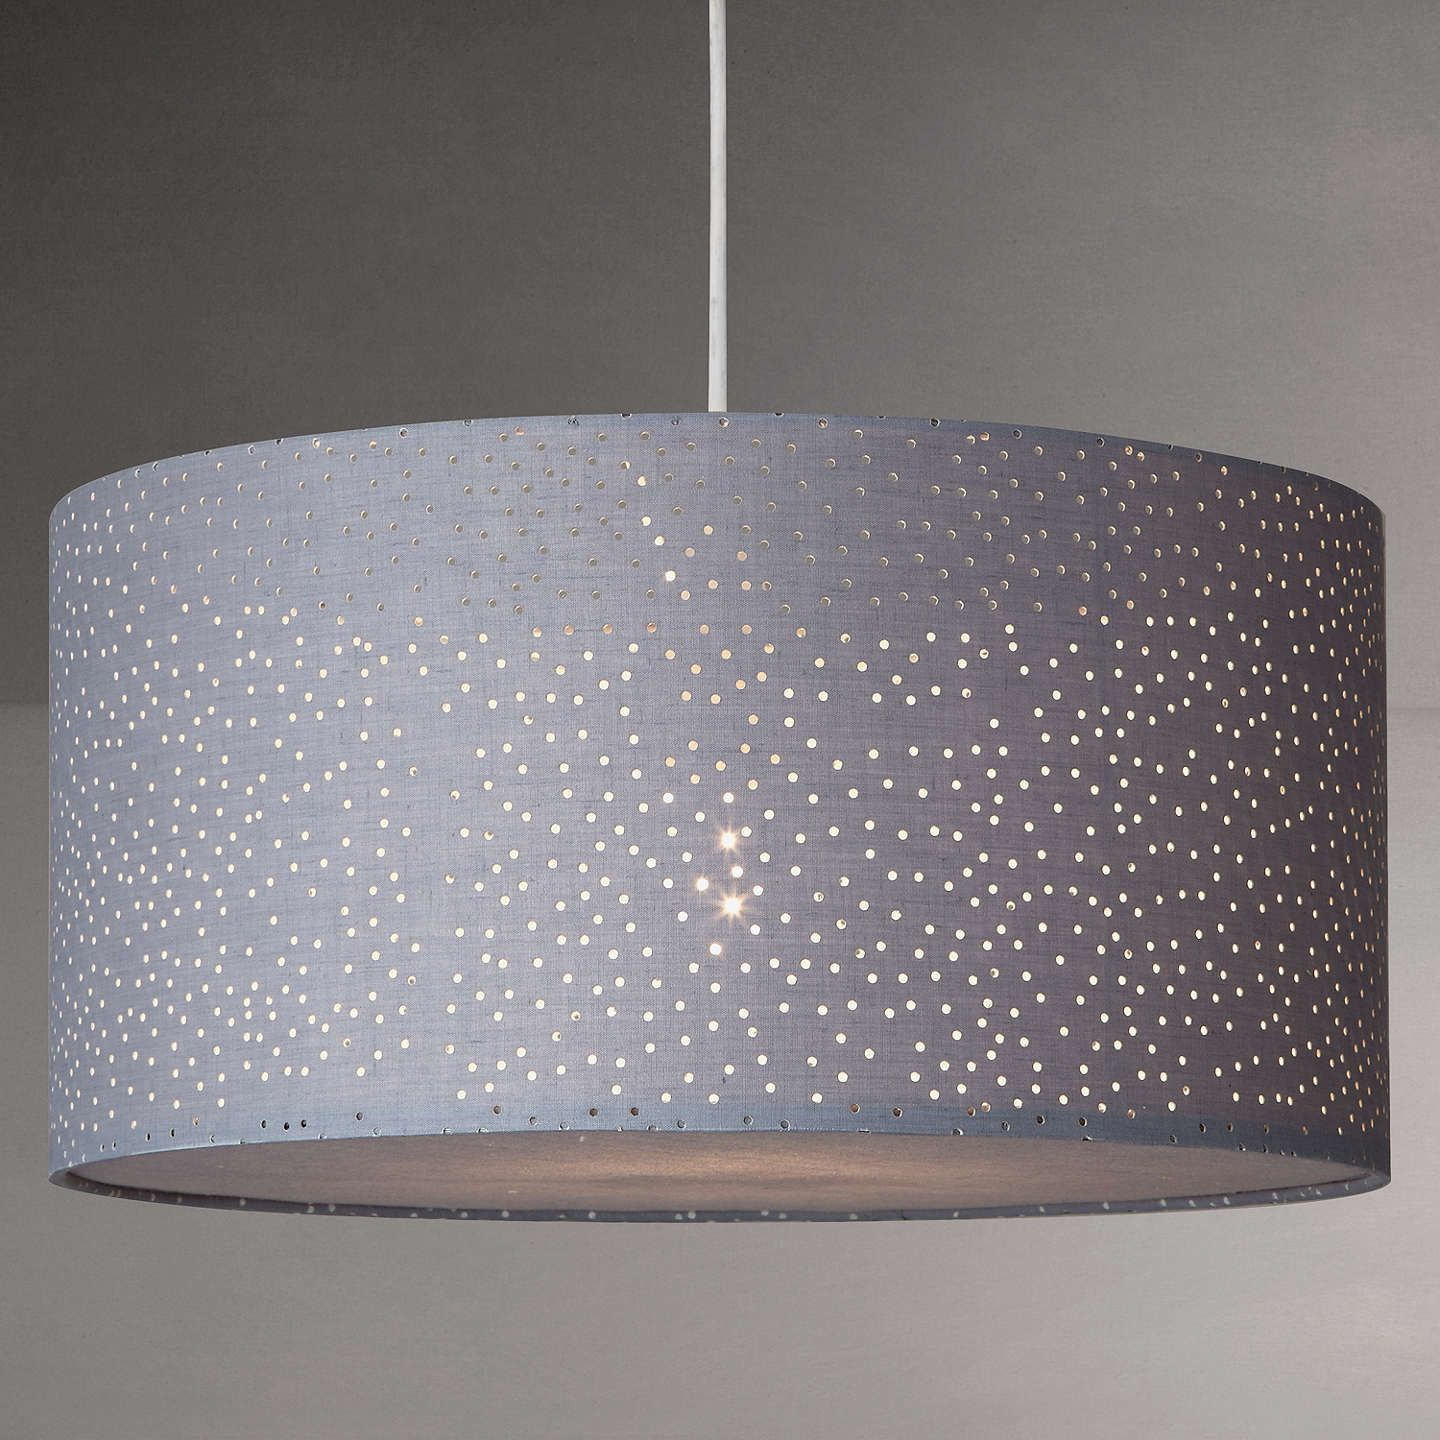 John Lewis Partners Alice Starry Sky Easy To Fit Ceiling Shade White Ceiling Shades Ceiling Light Shades Bedroom Light Shades